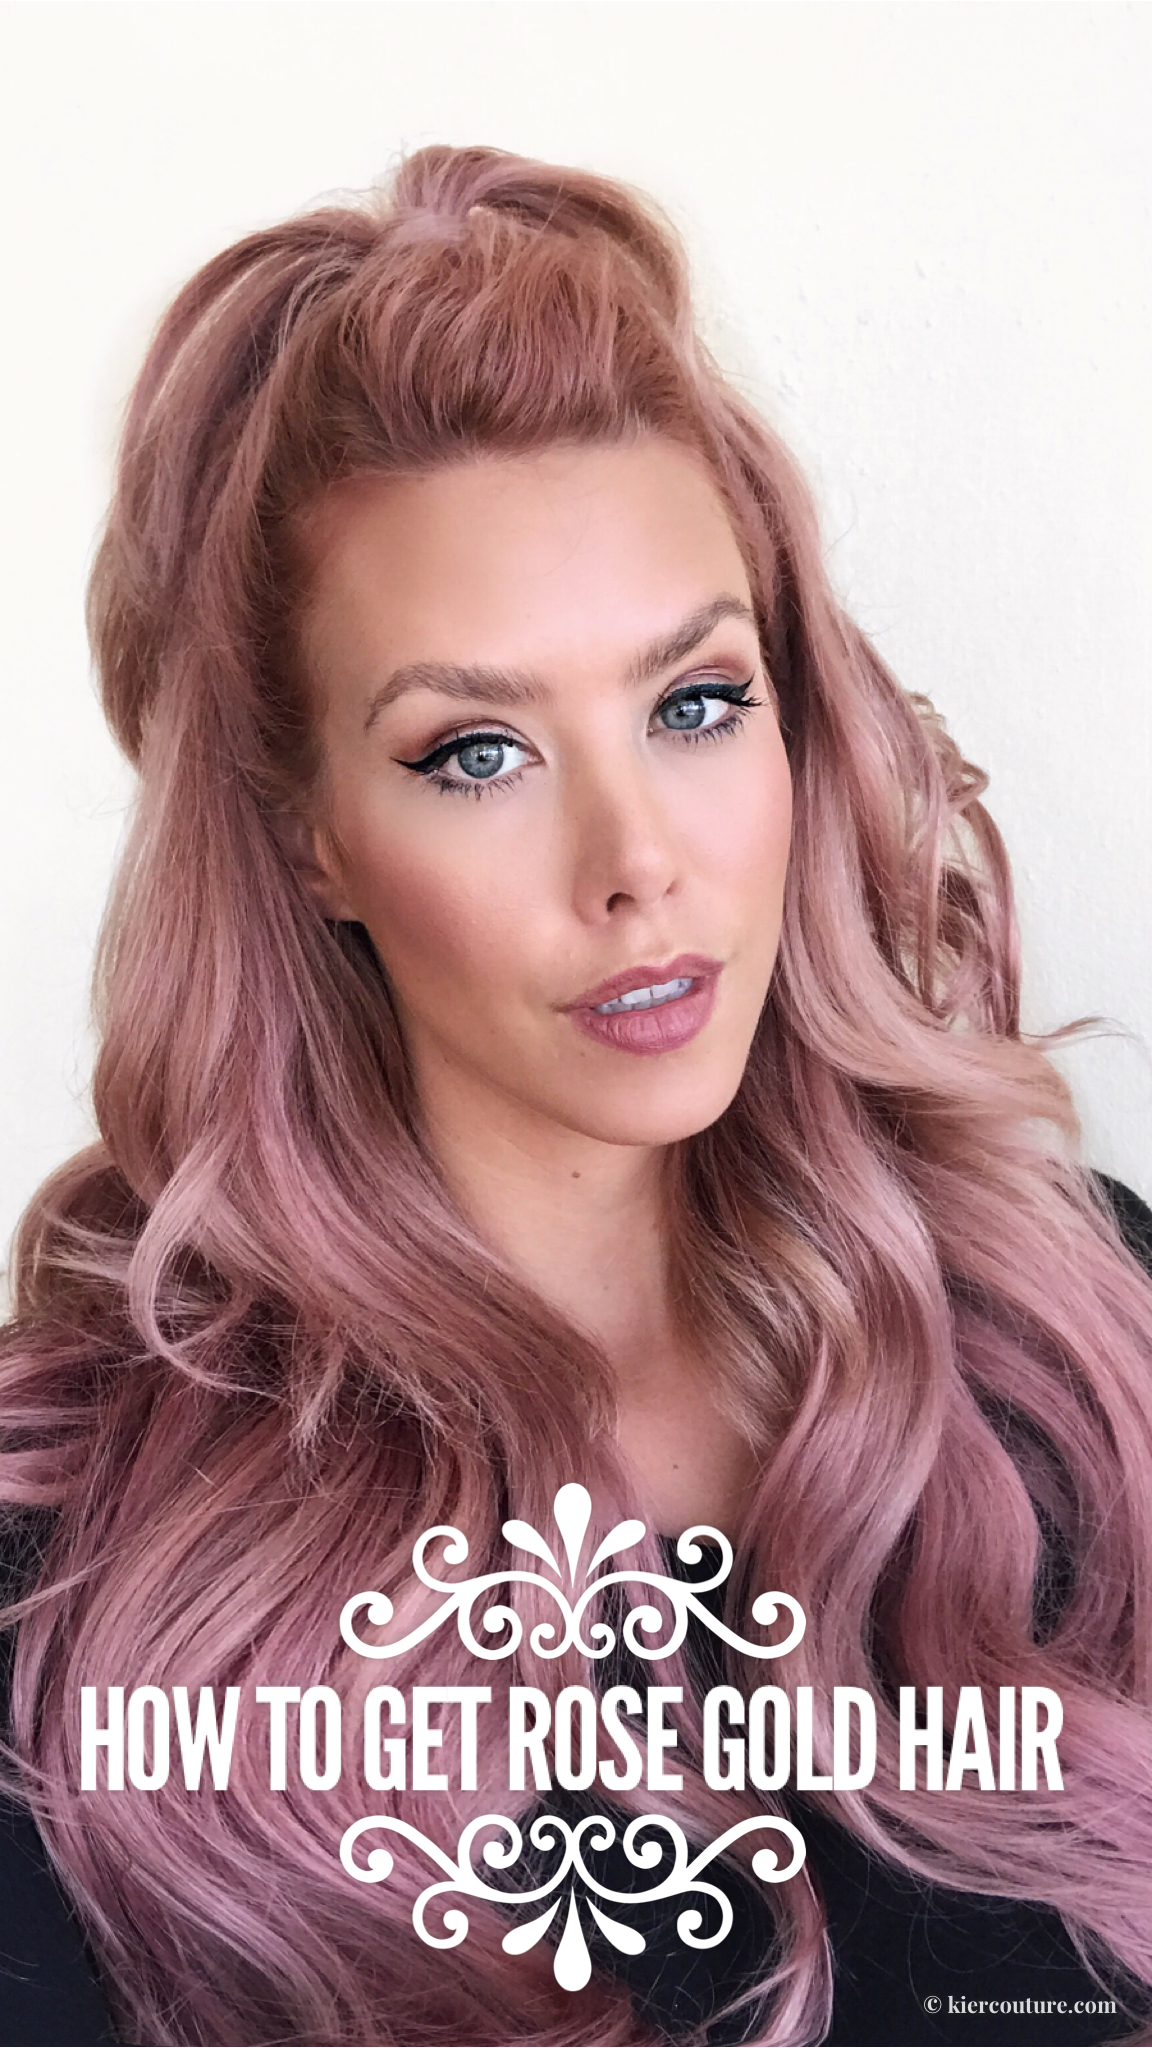 how to get rose gold hair